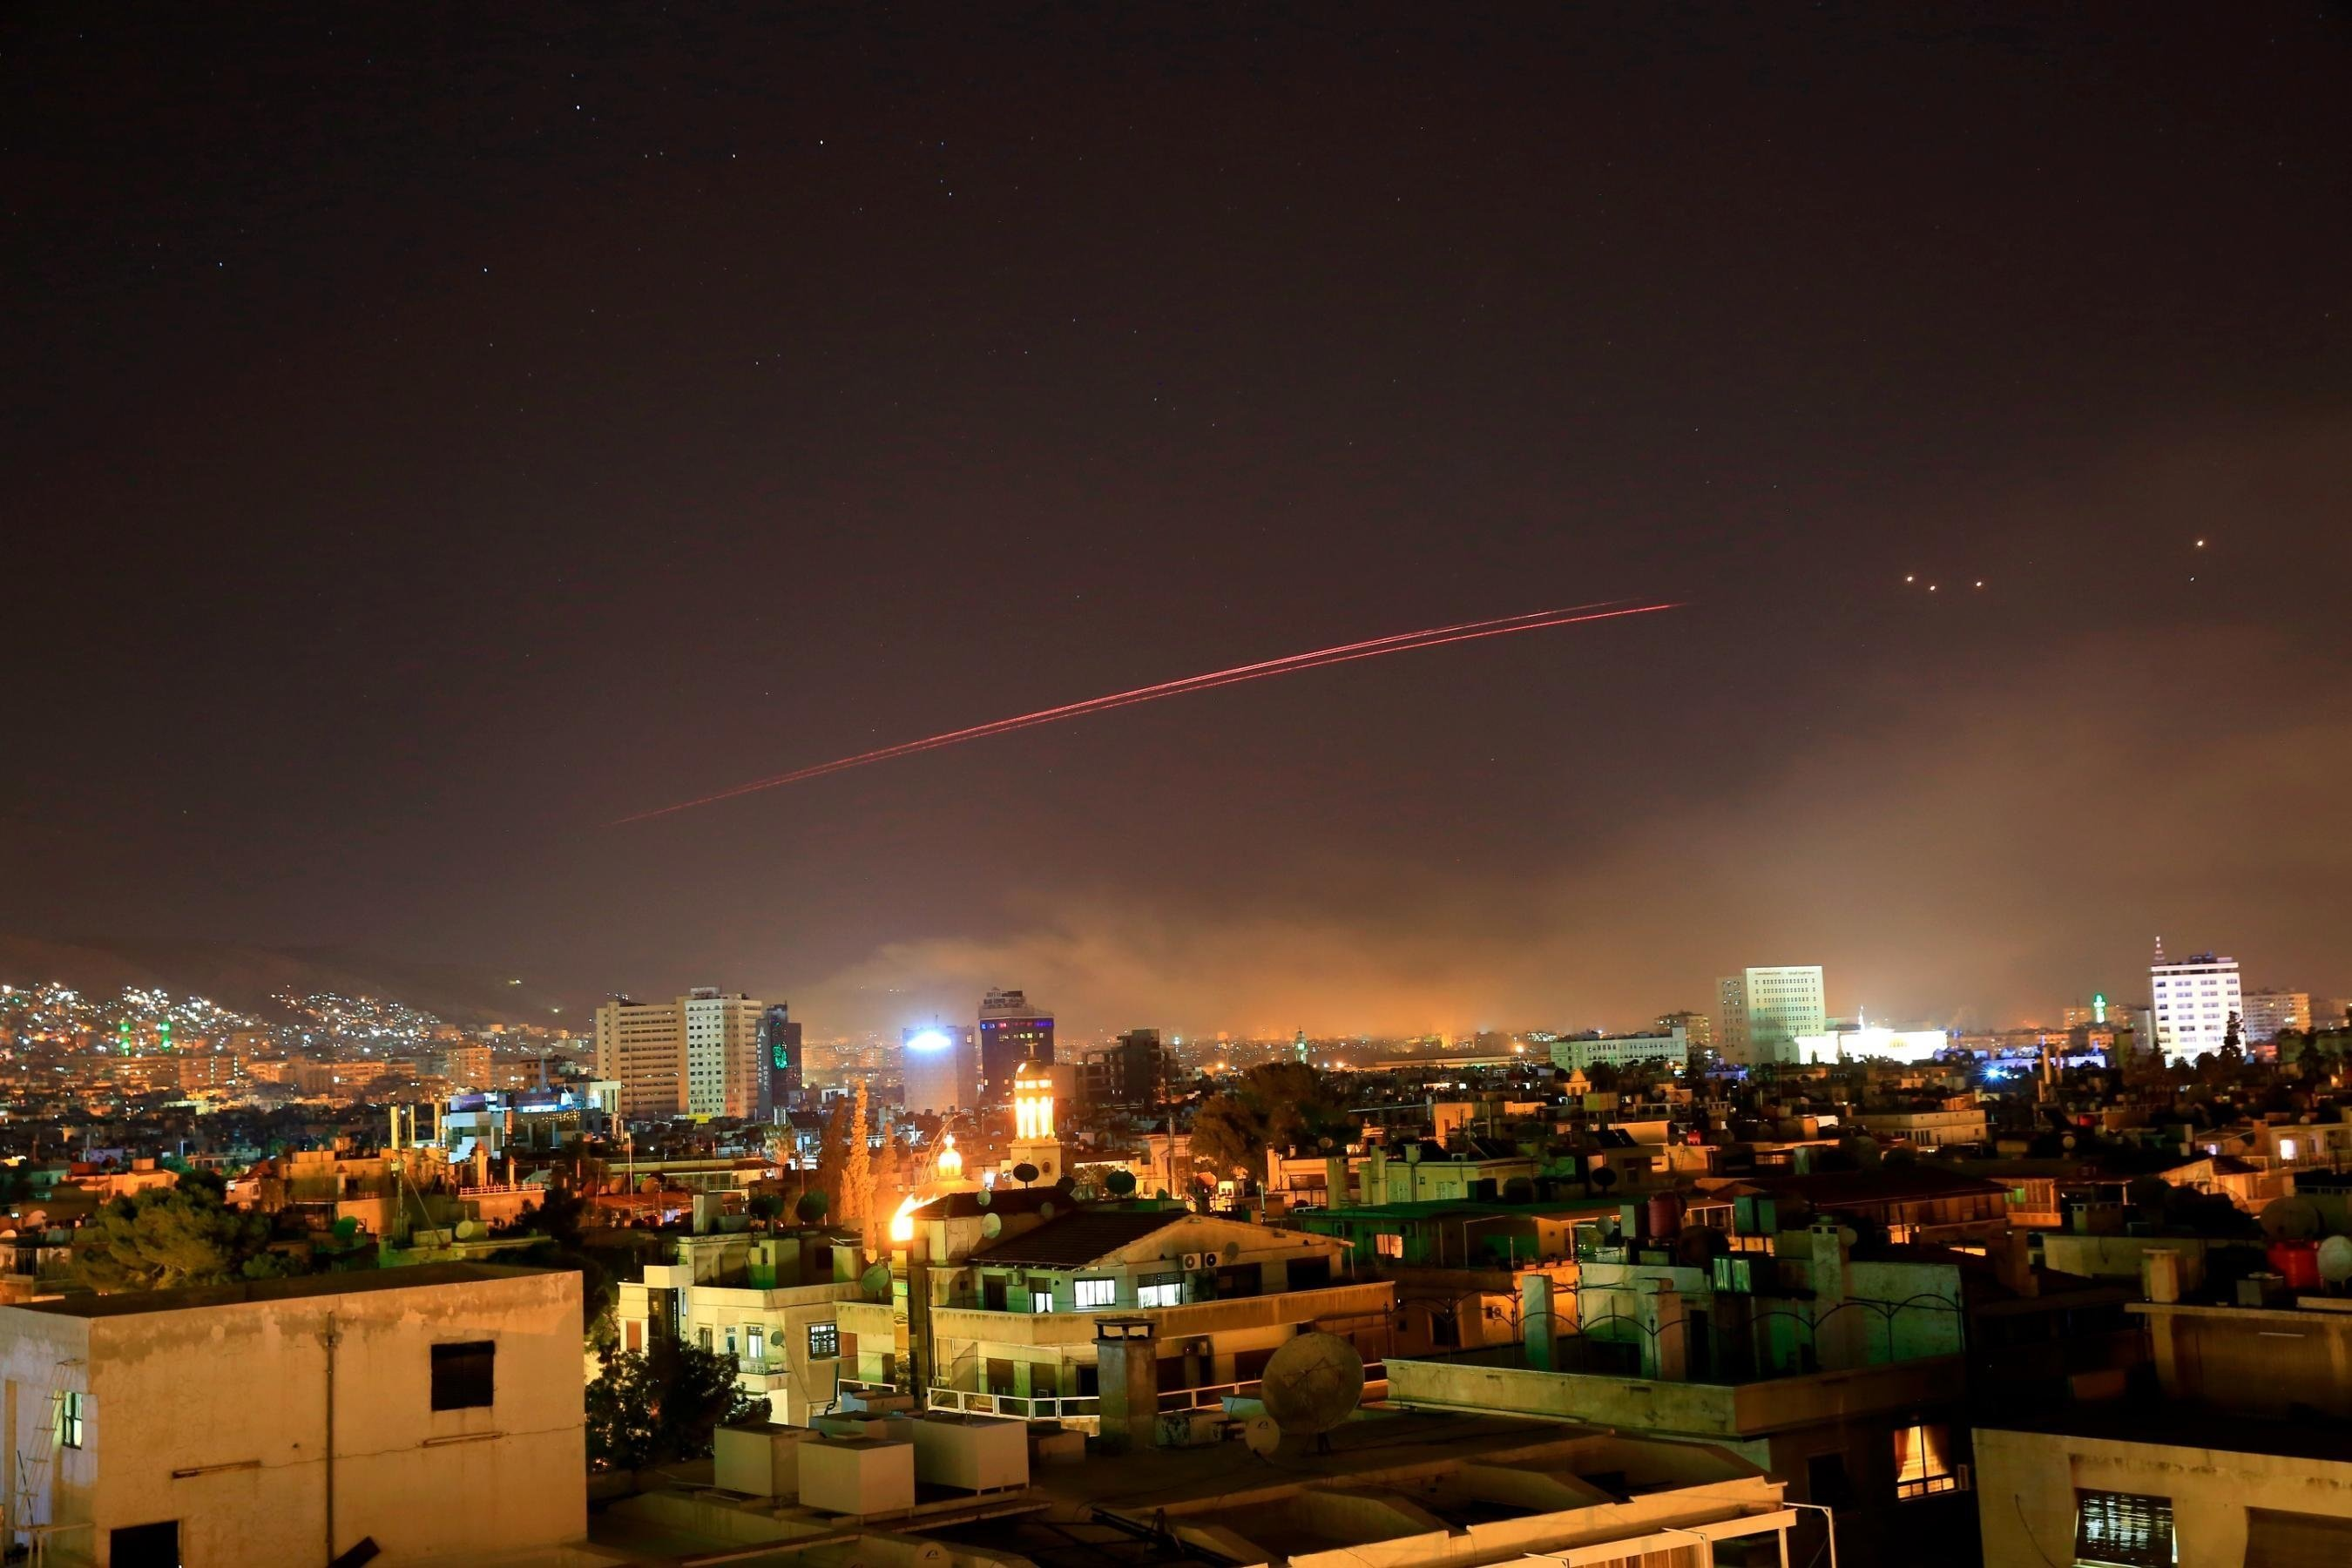 Damascus skies erupt with anti-aircraft fire as the US launches an attack on Syria targeting different parts of the Syrian capital Damascus, Syria, early Saturday, April 14, 2018.